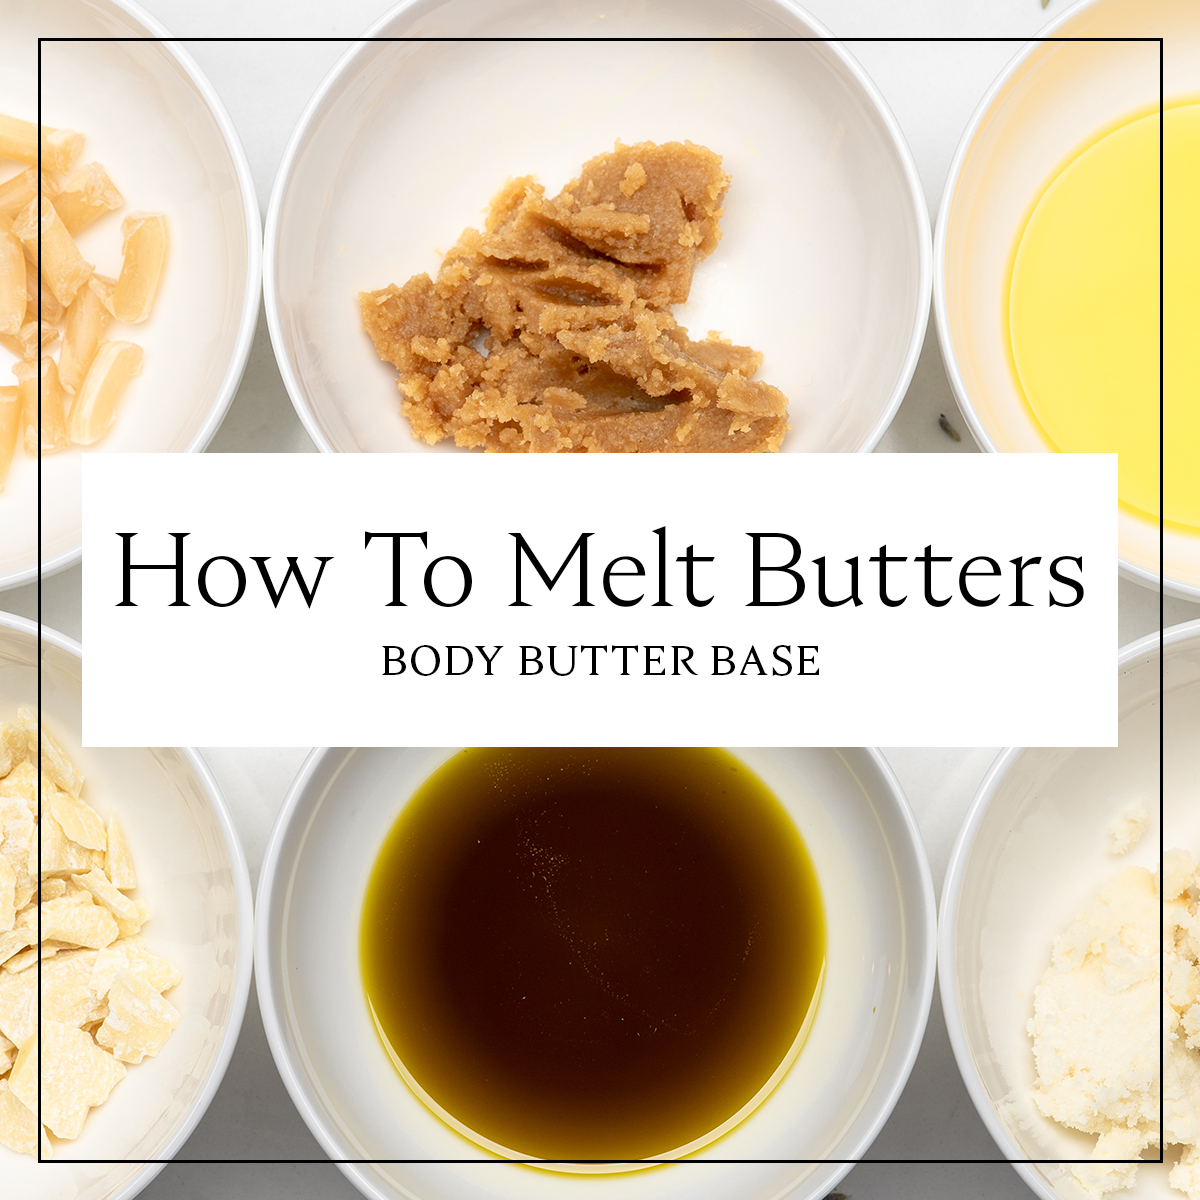 How to Melt Shea Butter for DIY Body Products